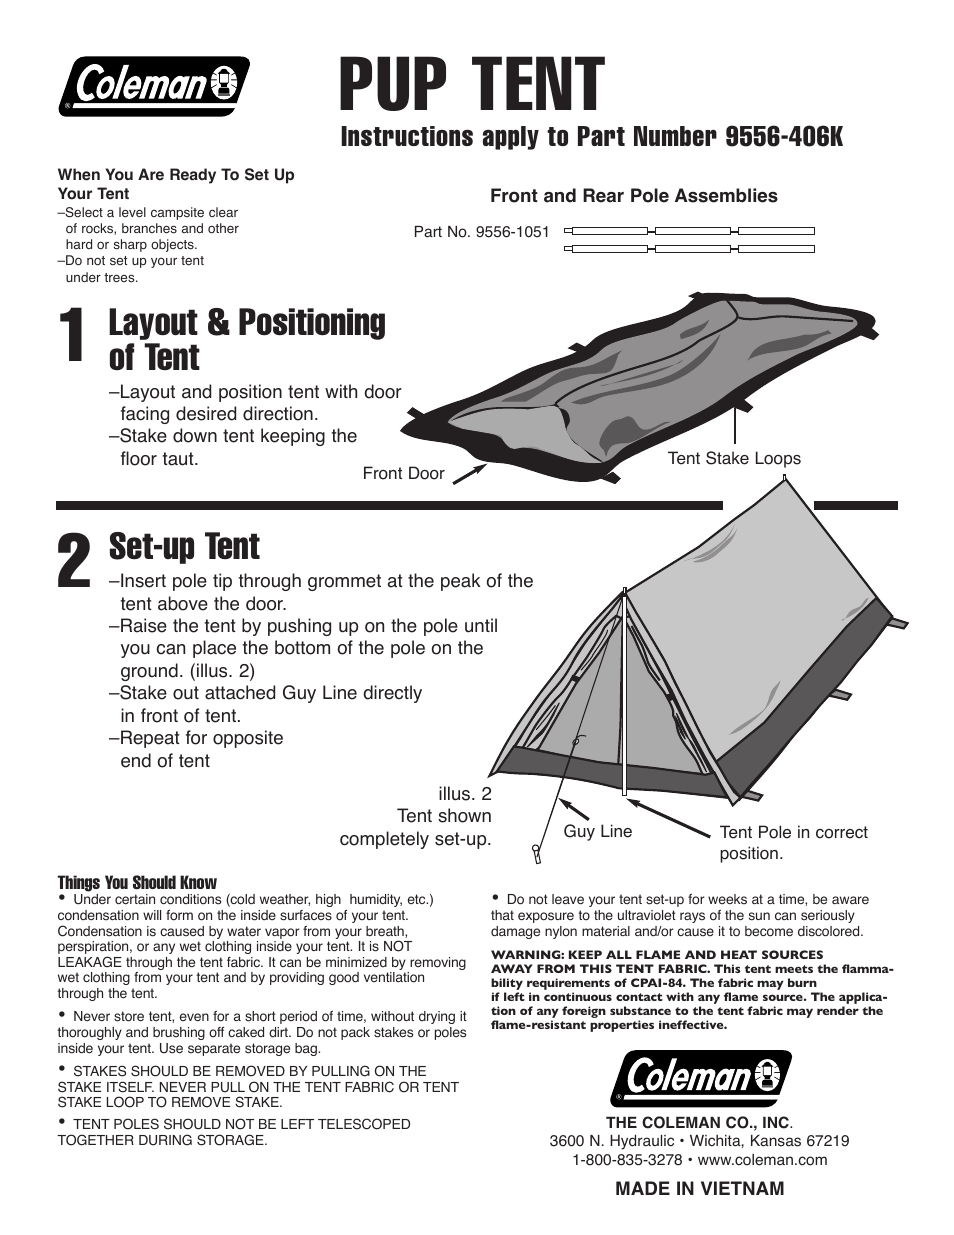 Coleman PUP Tent 9556-406K User Manual | 1 page